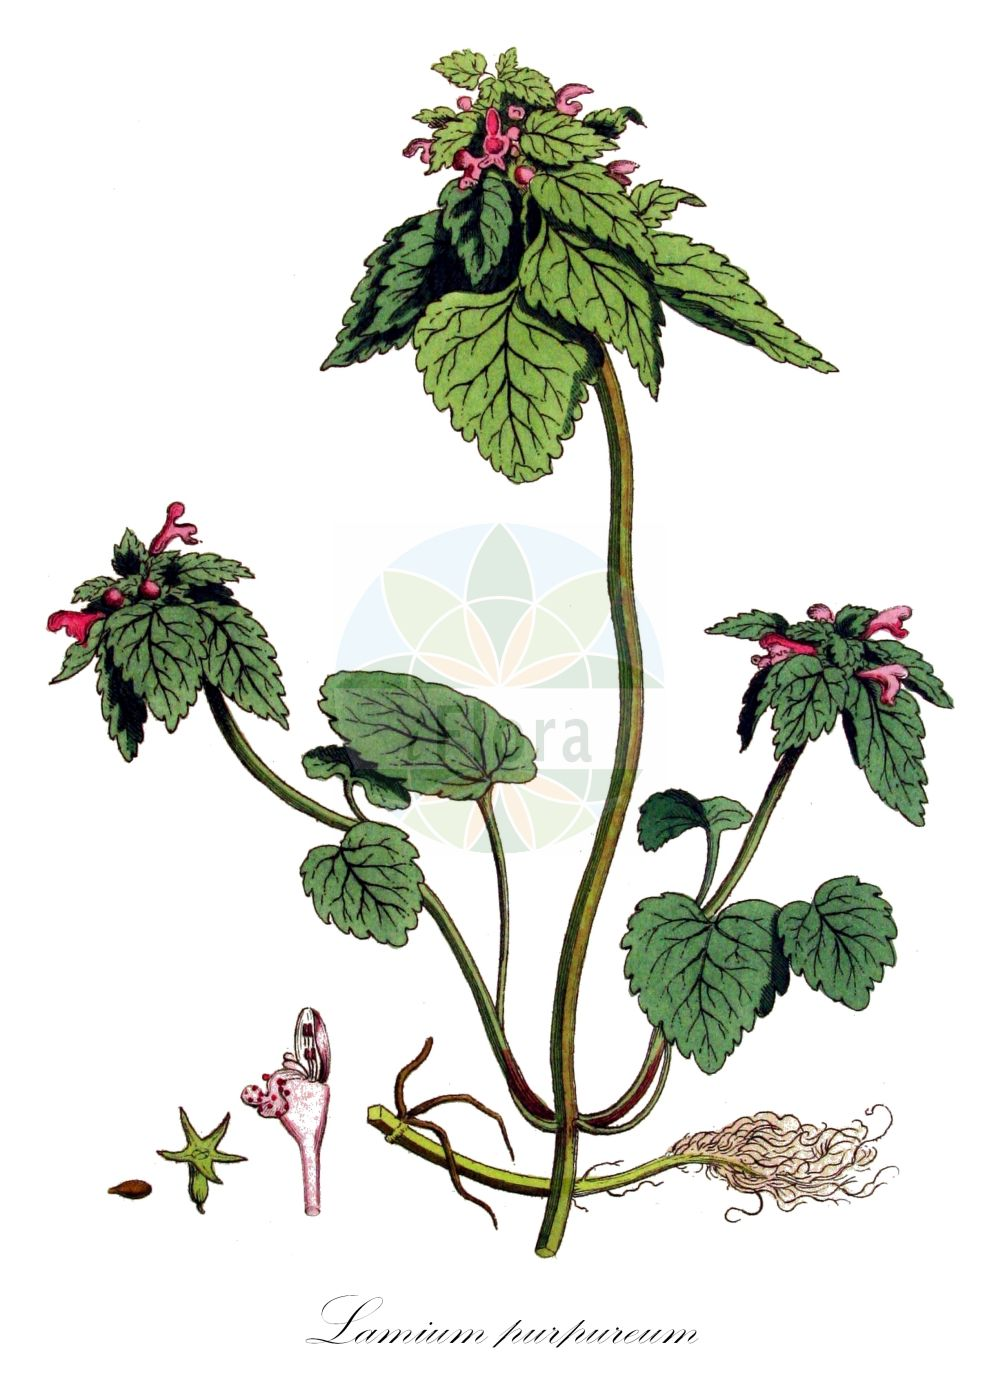 Historische Abbildung von Lamium purpureum (Purpurrote Taubnessel - Red Dead-nettle). Das Bild zeigt Blatt, Bluete, Frucht und Same. ---- Historical Drawing of Lamium purpureum (Purpurrote Taubnessel - Red Dead-nettle).The image is showing leaf, flower, fruit and seed.(Lamium purpureum,Purpurrote Taubnessel,Red Dead-nettle,Lamiopsis purpurea,,Eingeschnittene Taubnessel,i.w.S.,Purple Archangel,Purple Deadnettle,Red Henbit,Lamium,Taubnessel,Deadnettle,Lamiaceae,Lippenbluetengewaechse;Lippenbluetler,Nettle family,Blatt,Bluete,Frucht,Same,leaf,flower,fruit,seed,Kops (1800-1934))